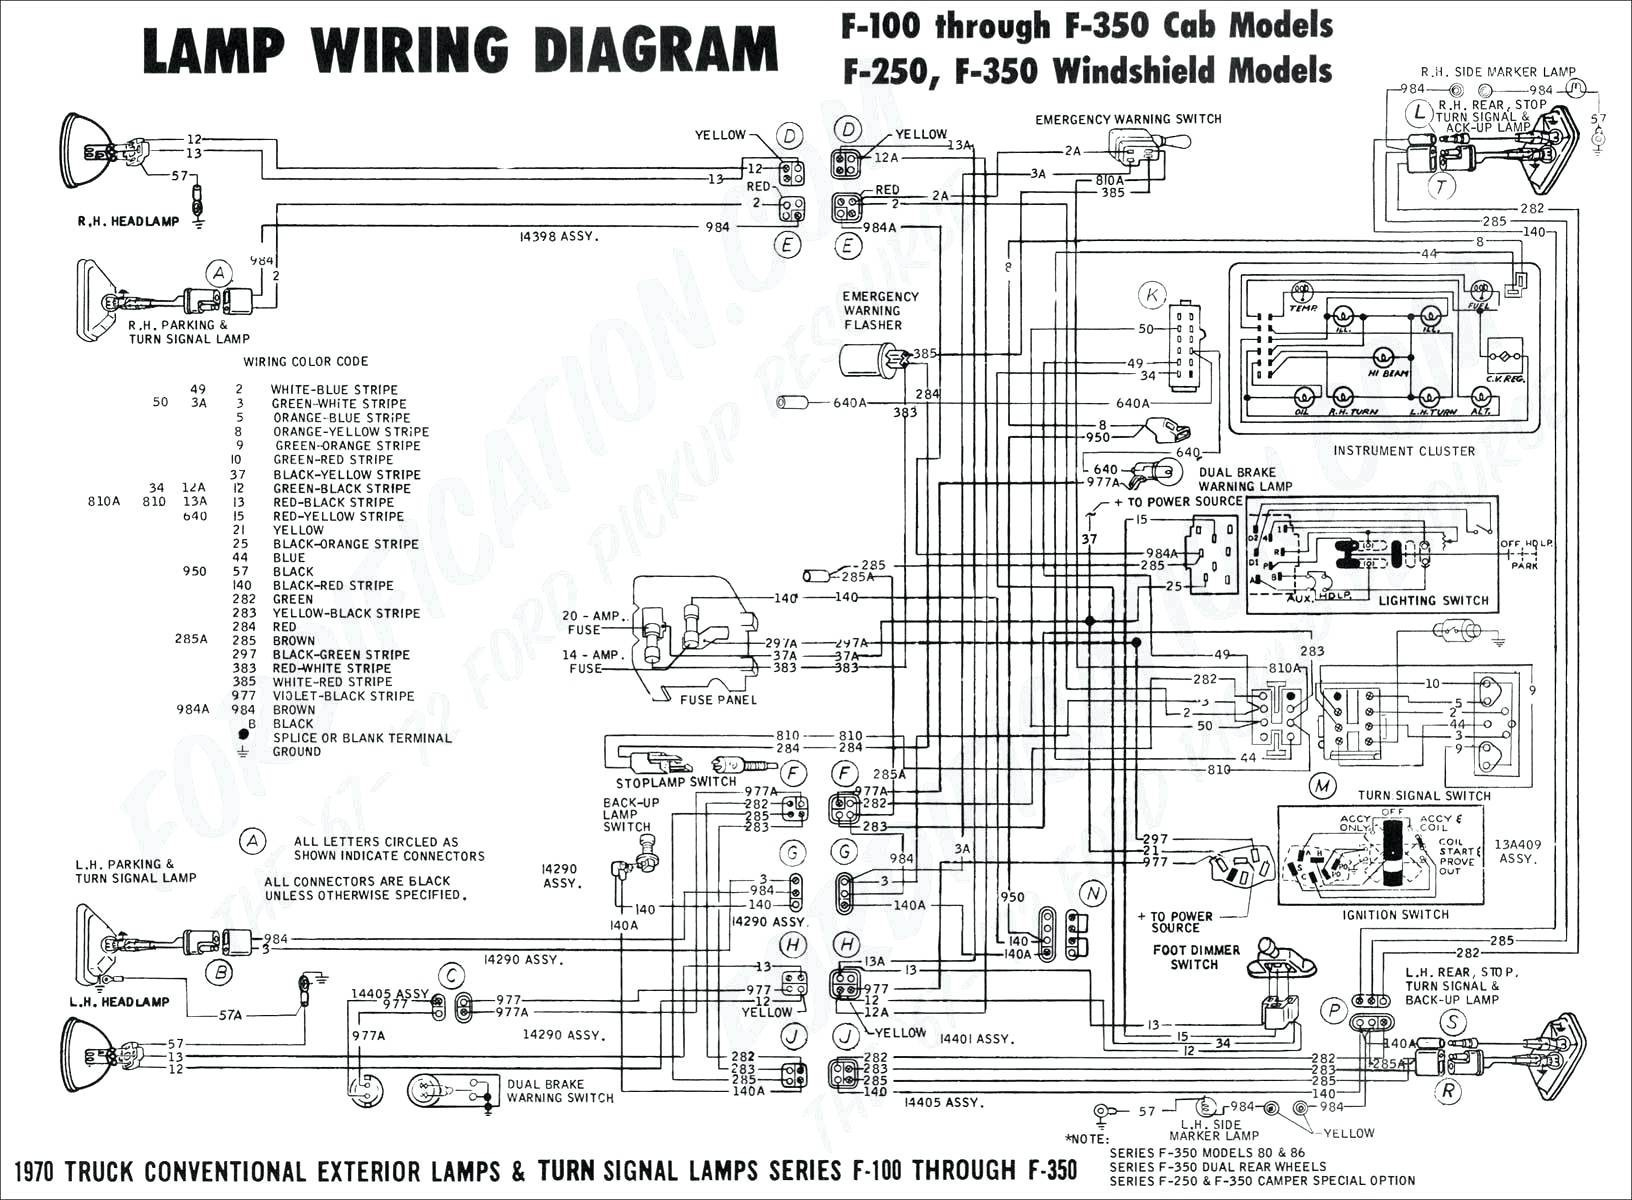 wiring diagram for jlg 2630es wire management \u0026 wiring diagram Lesco Wiring Diagram